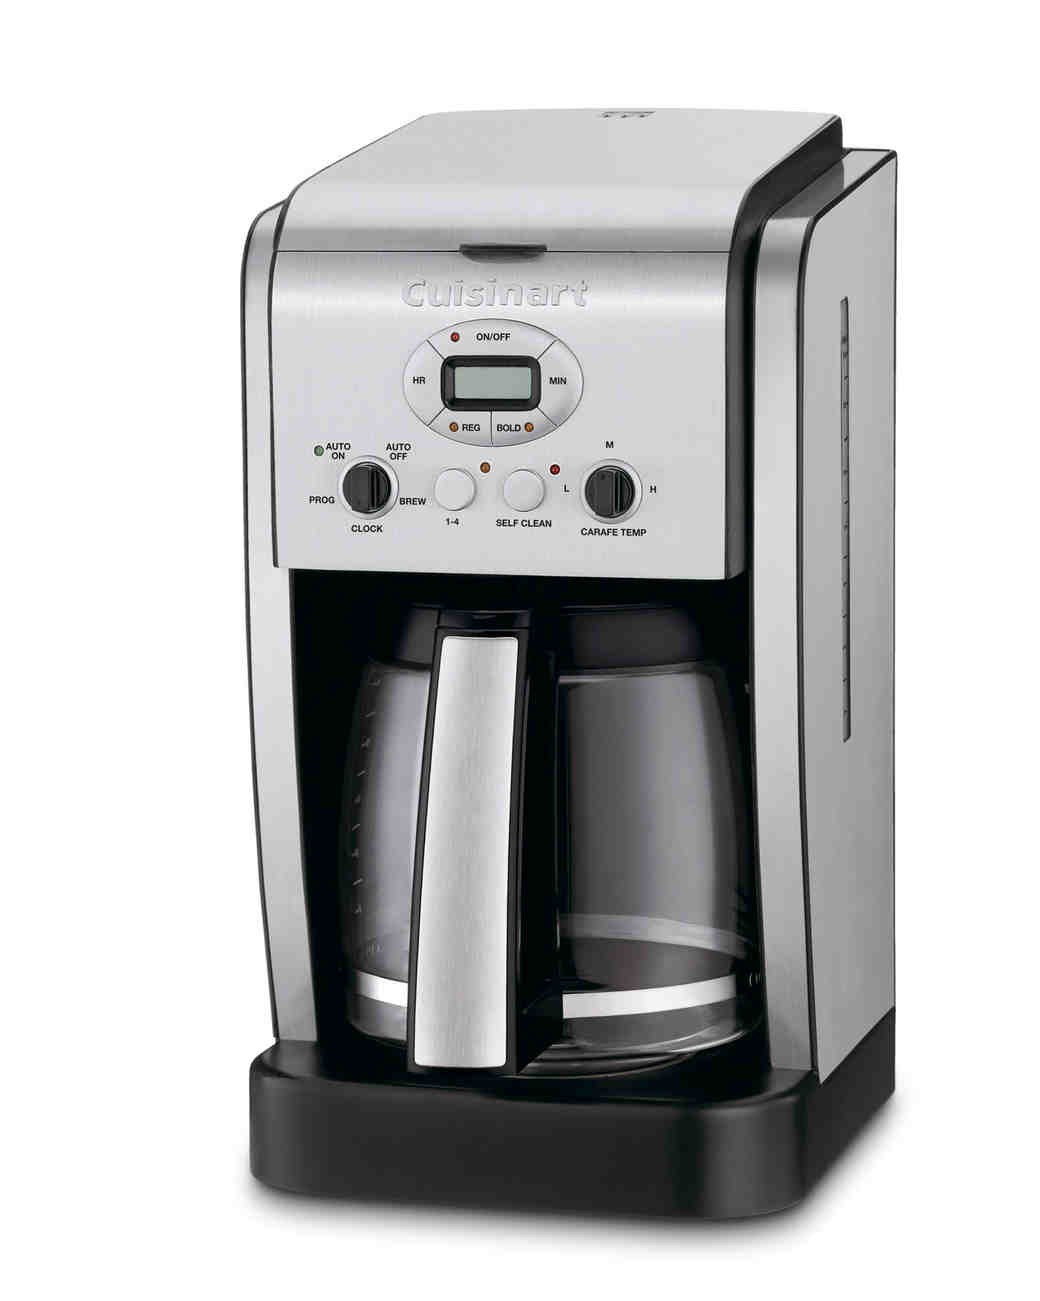 coffee-makers-registry-cuisinart-extreme-brew-0914.jpg